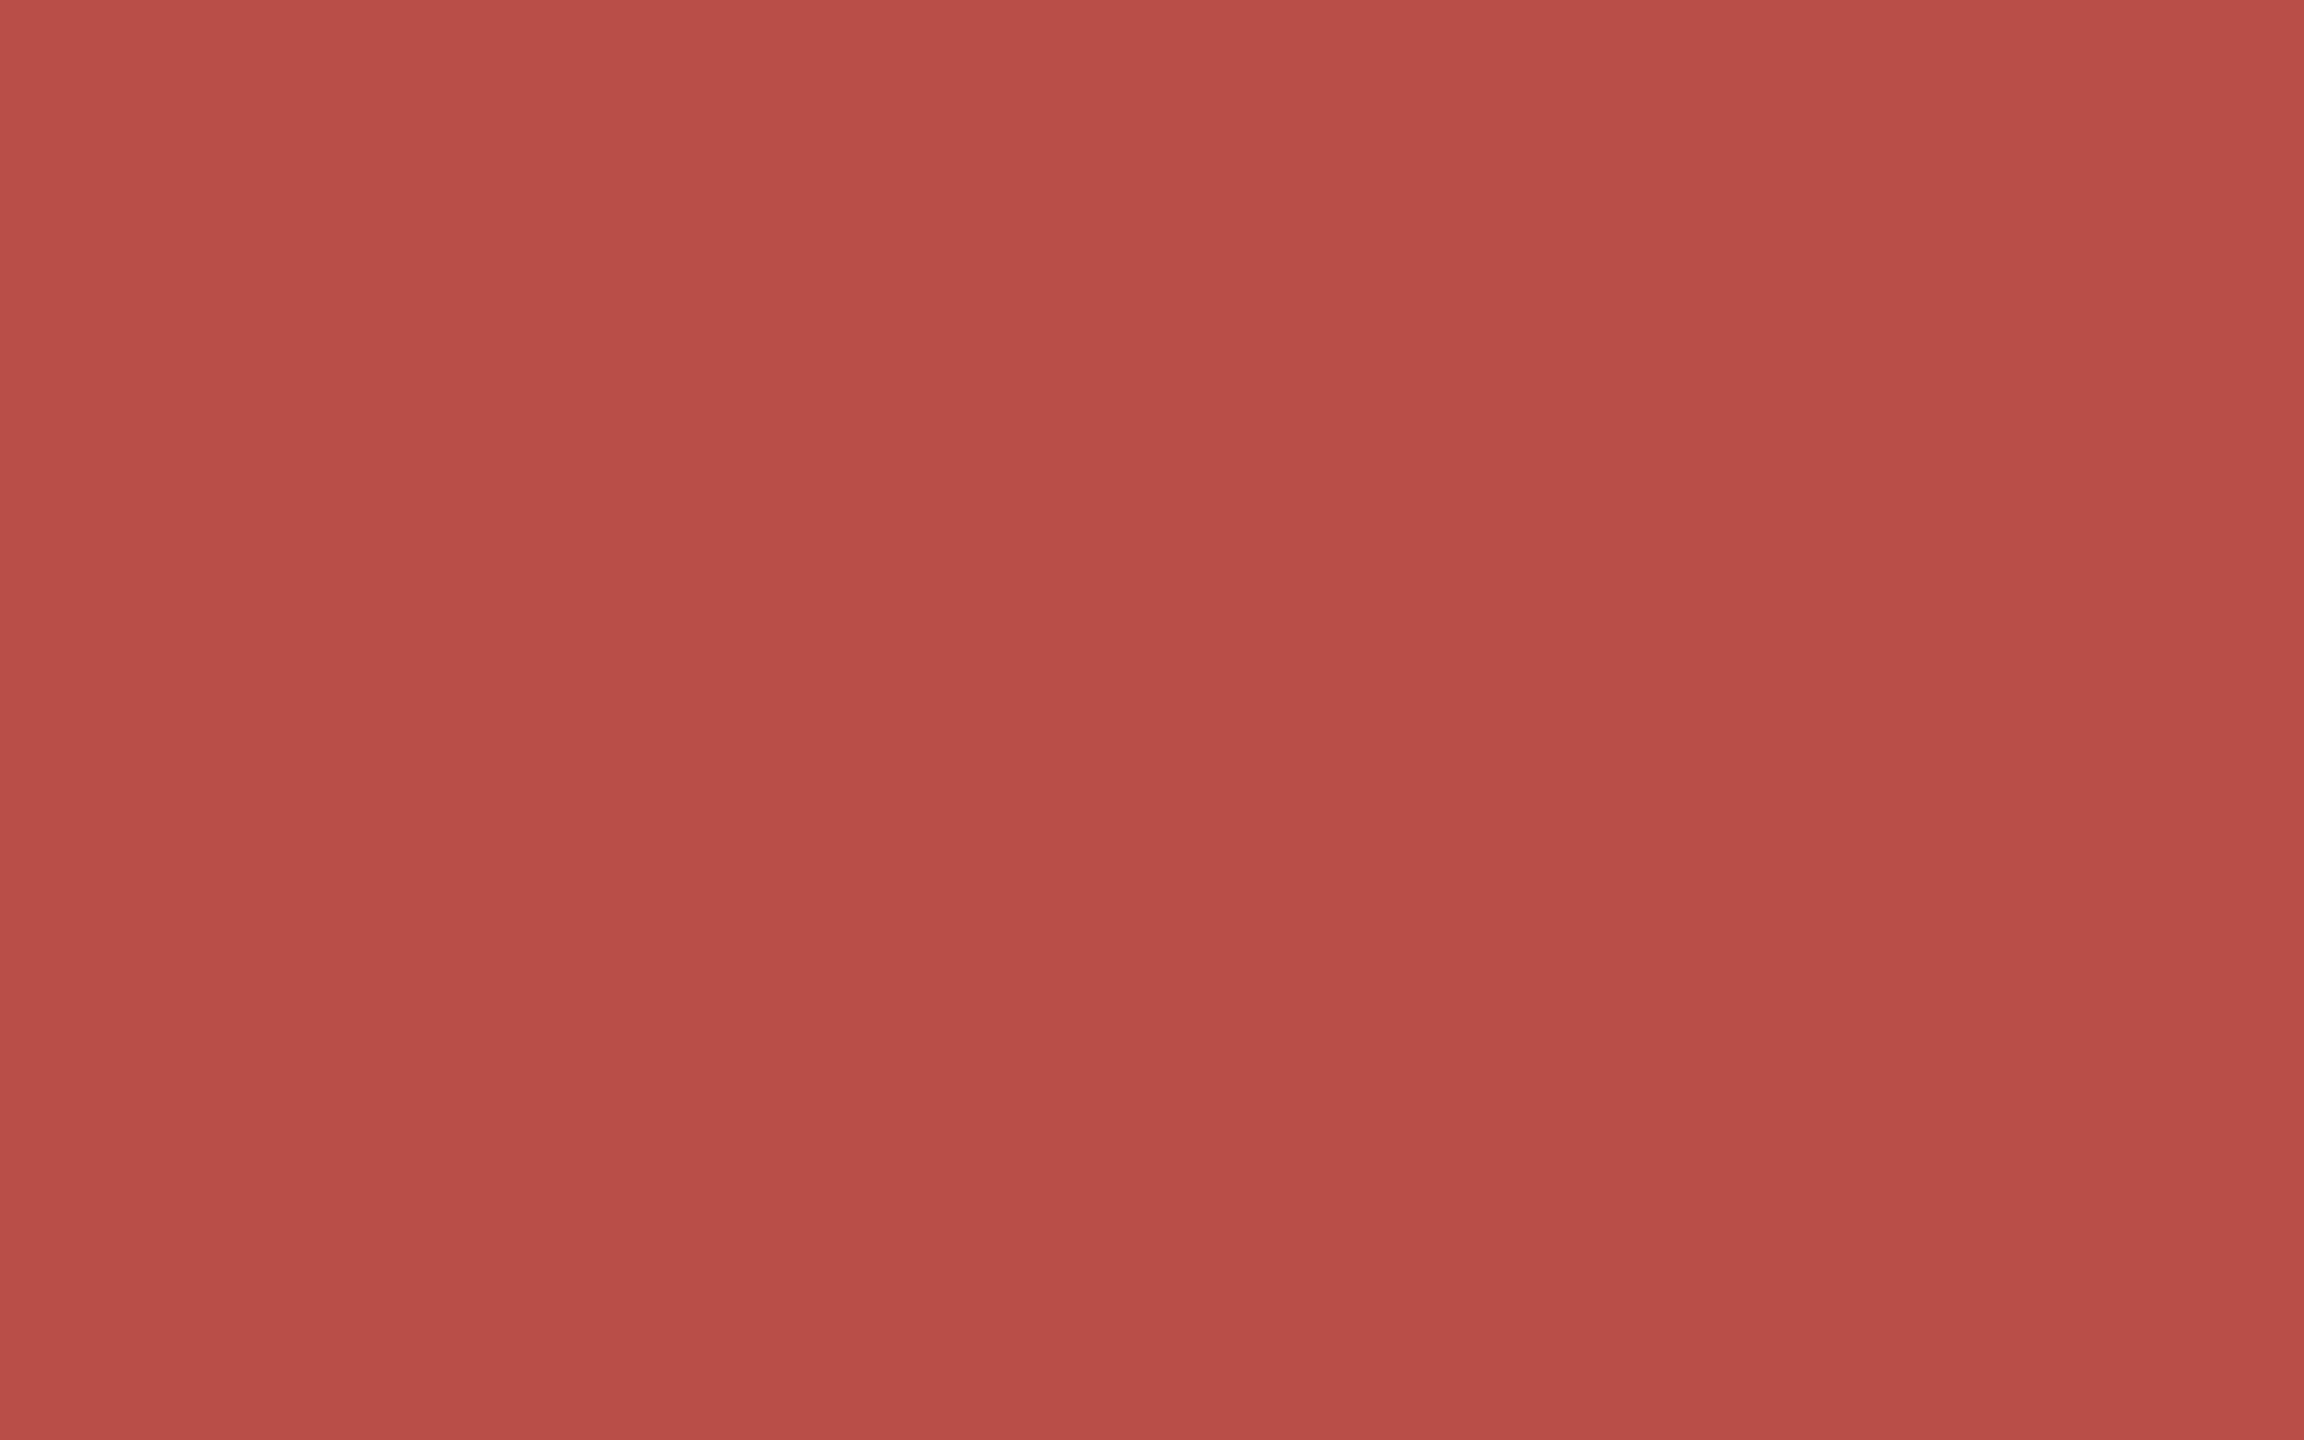 2304x1440 Deep Chestnut Solid Color Background